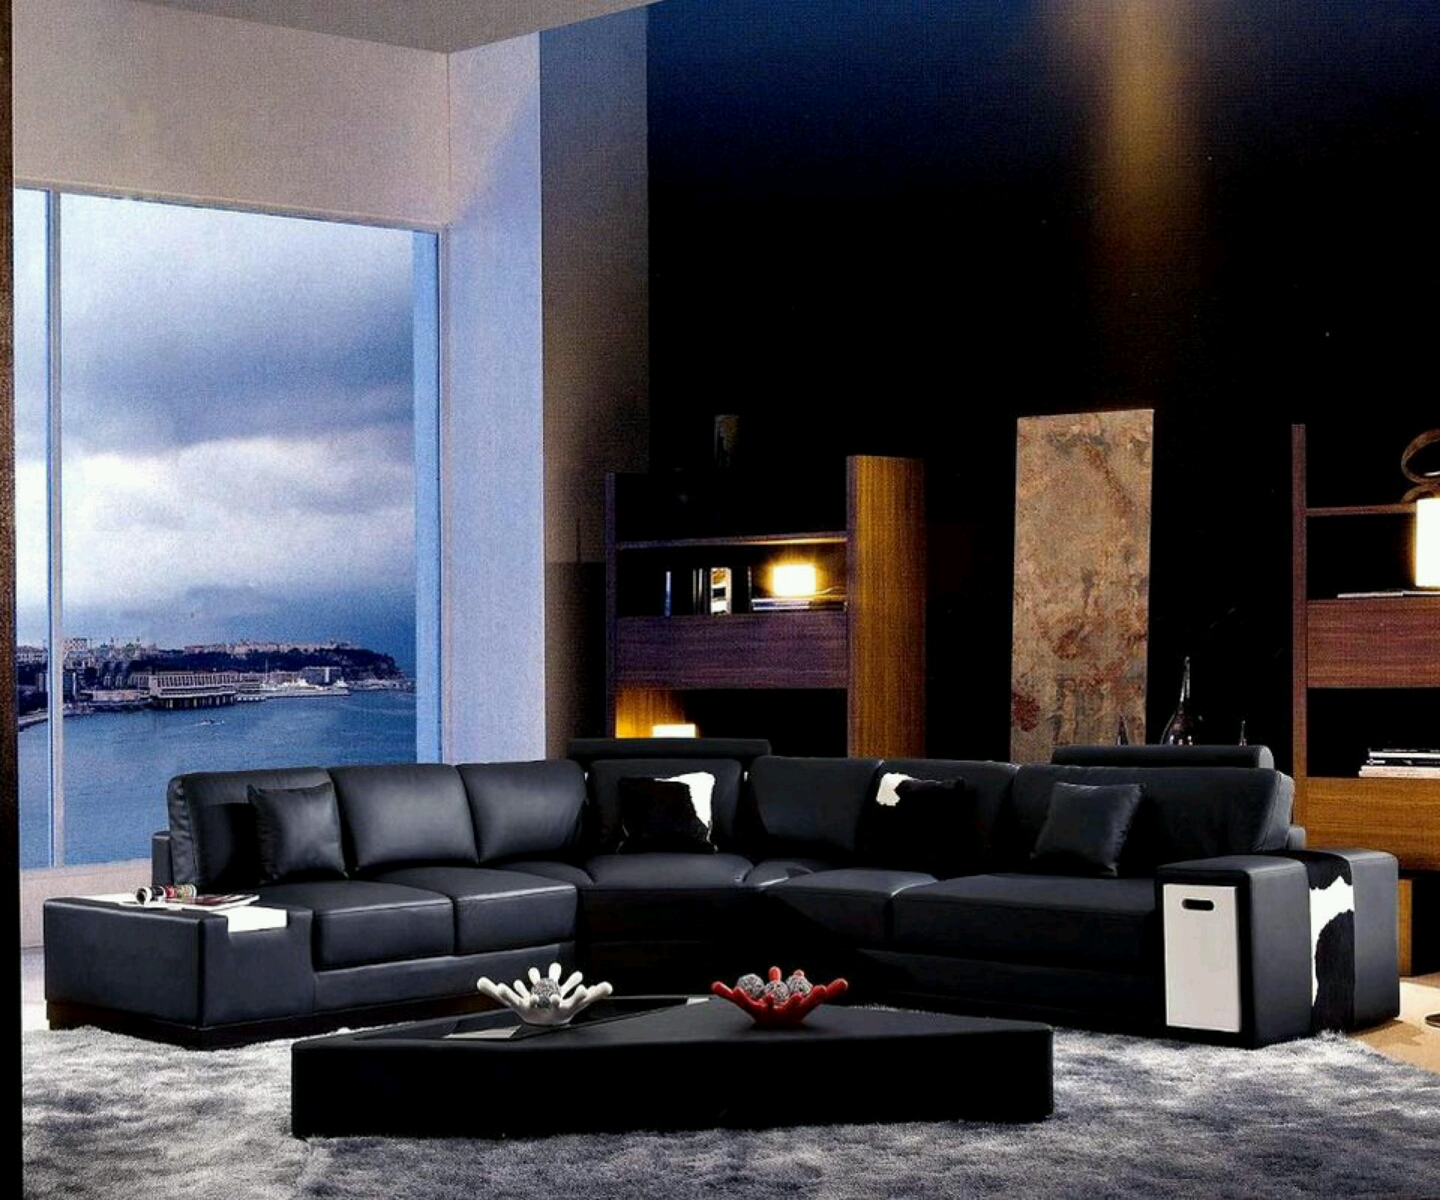 New home designs latest luxury living rooms interior for Latest living room ideas